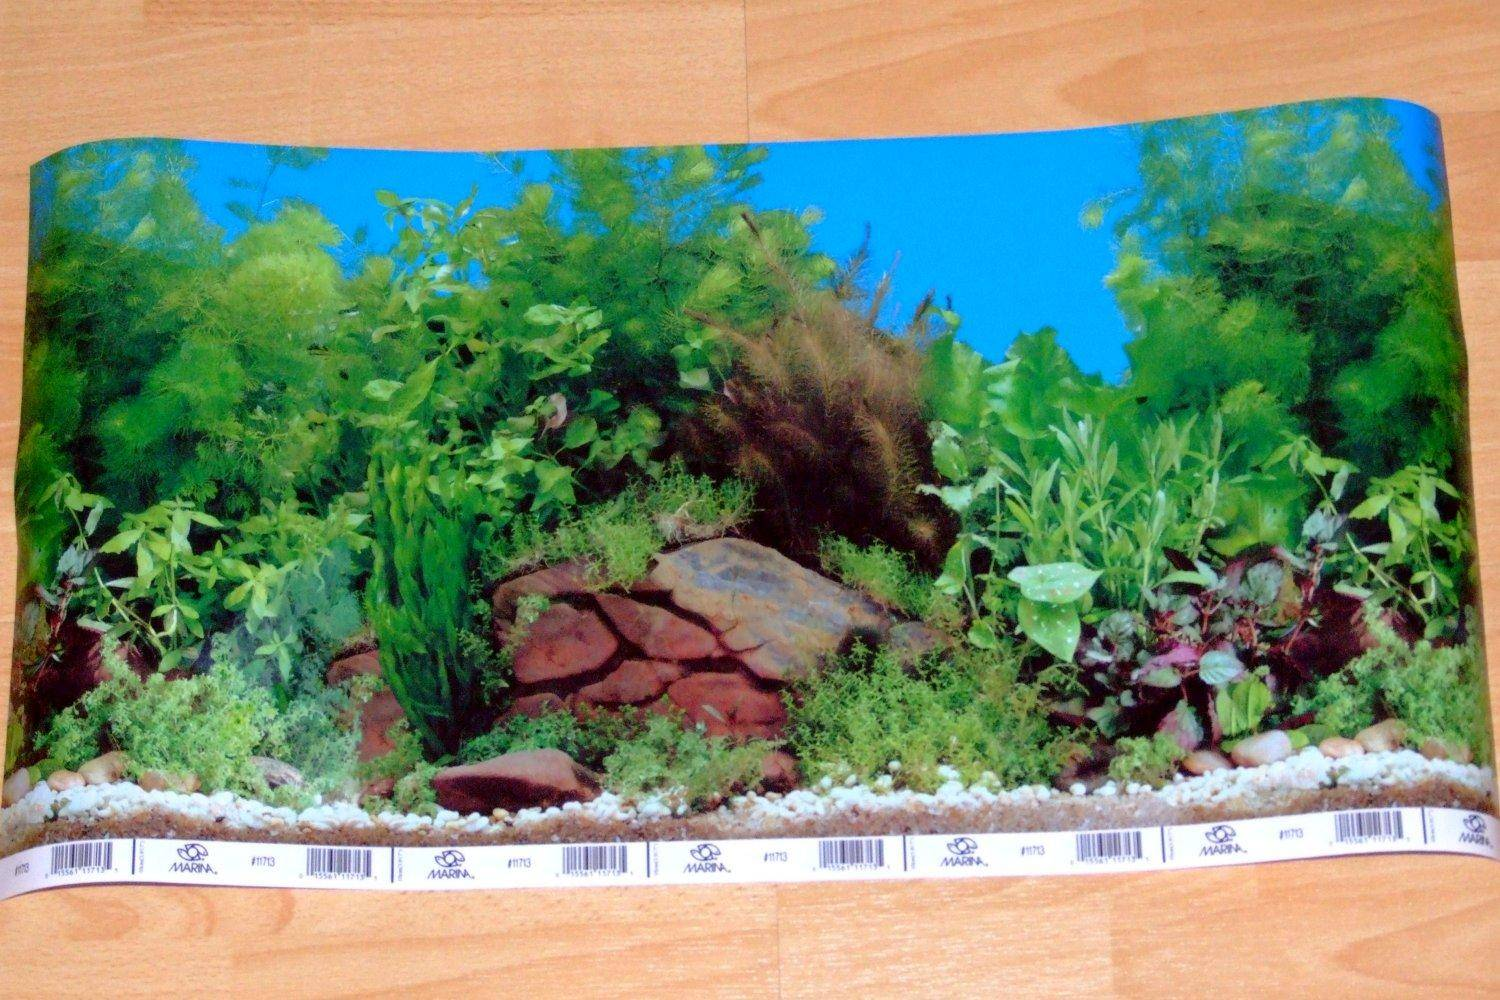 picture regarding Aquarium Backgrounds Printable referred to as A uncomplicated consultant upon deciding on aquarium backgrounds